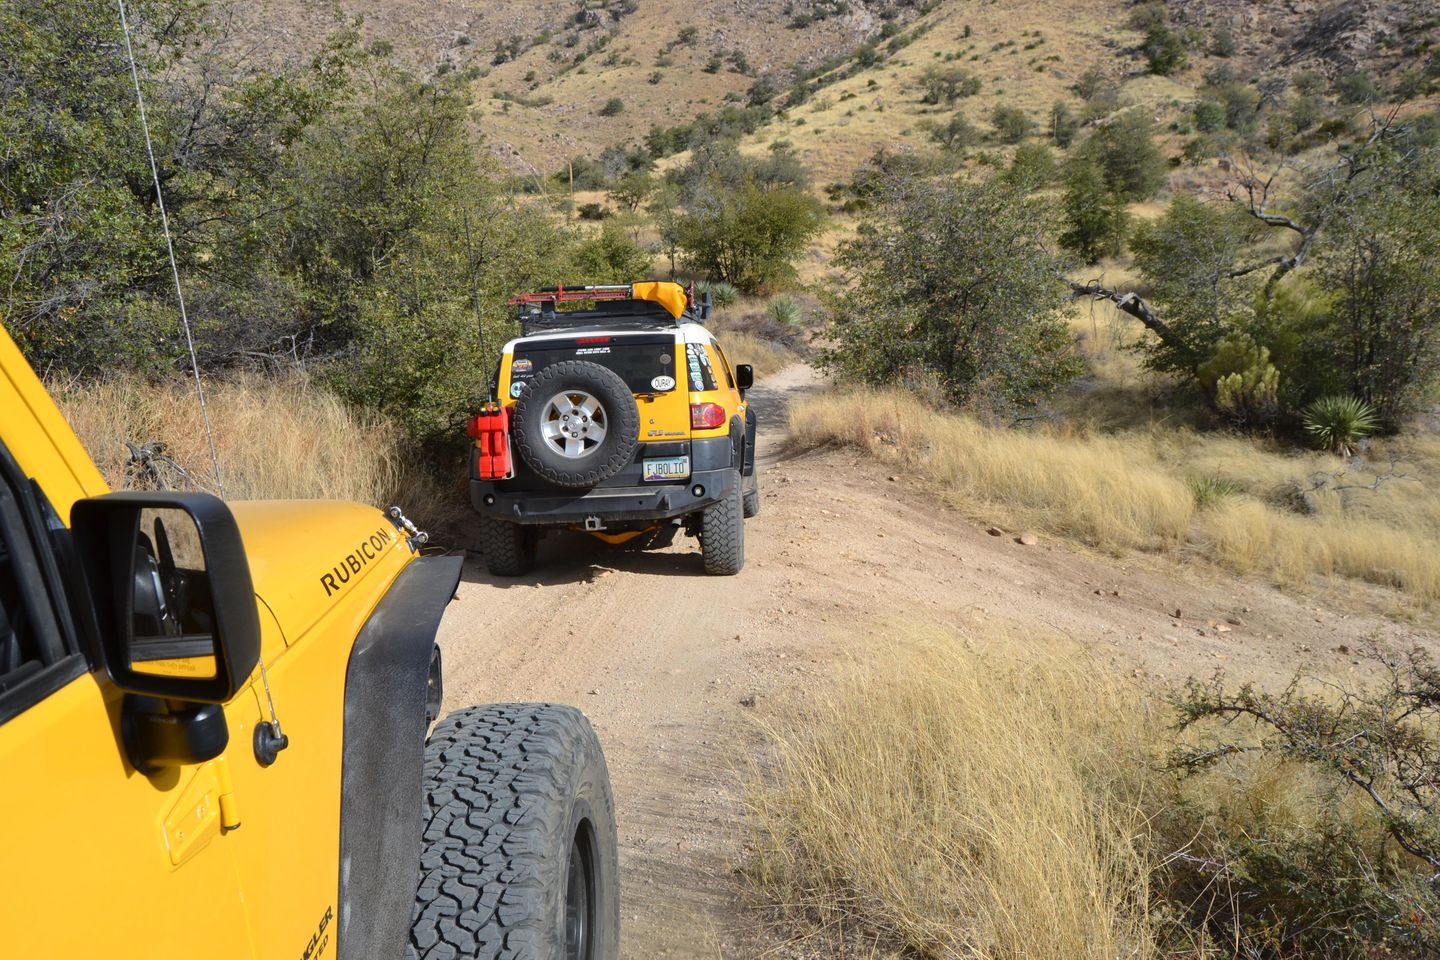 Charouleau Gap / FR# 736 - Waypoint 15: Unknown Road Camp Spot Likely Stay Left